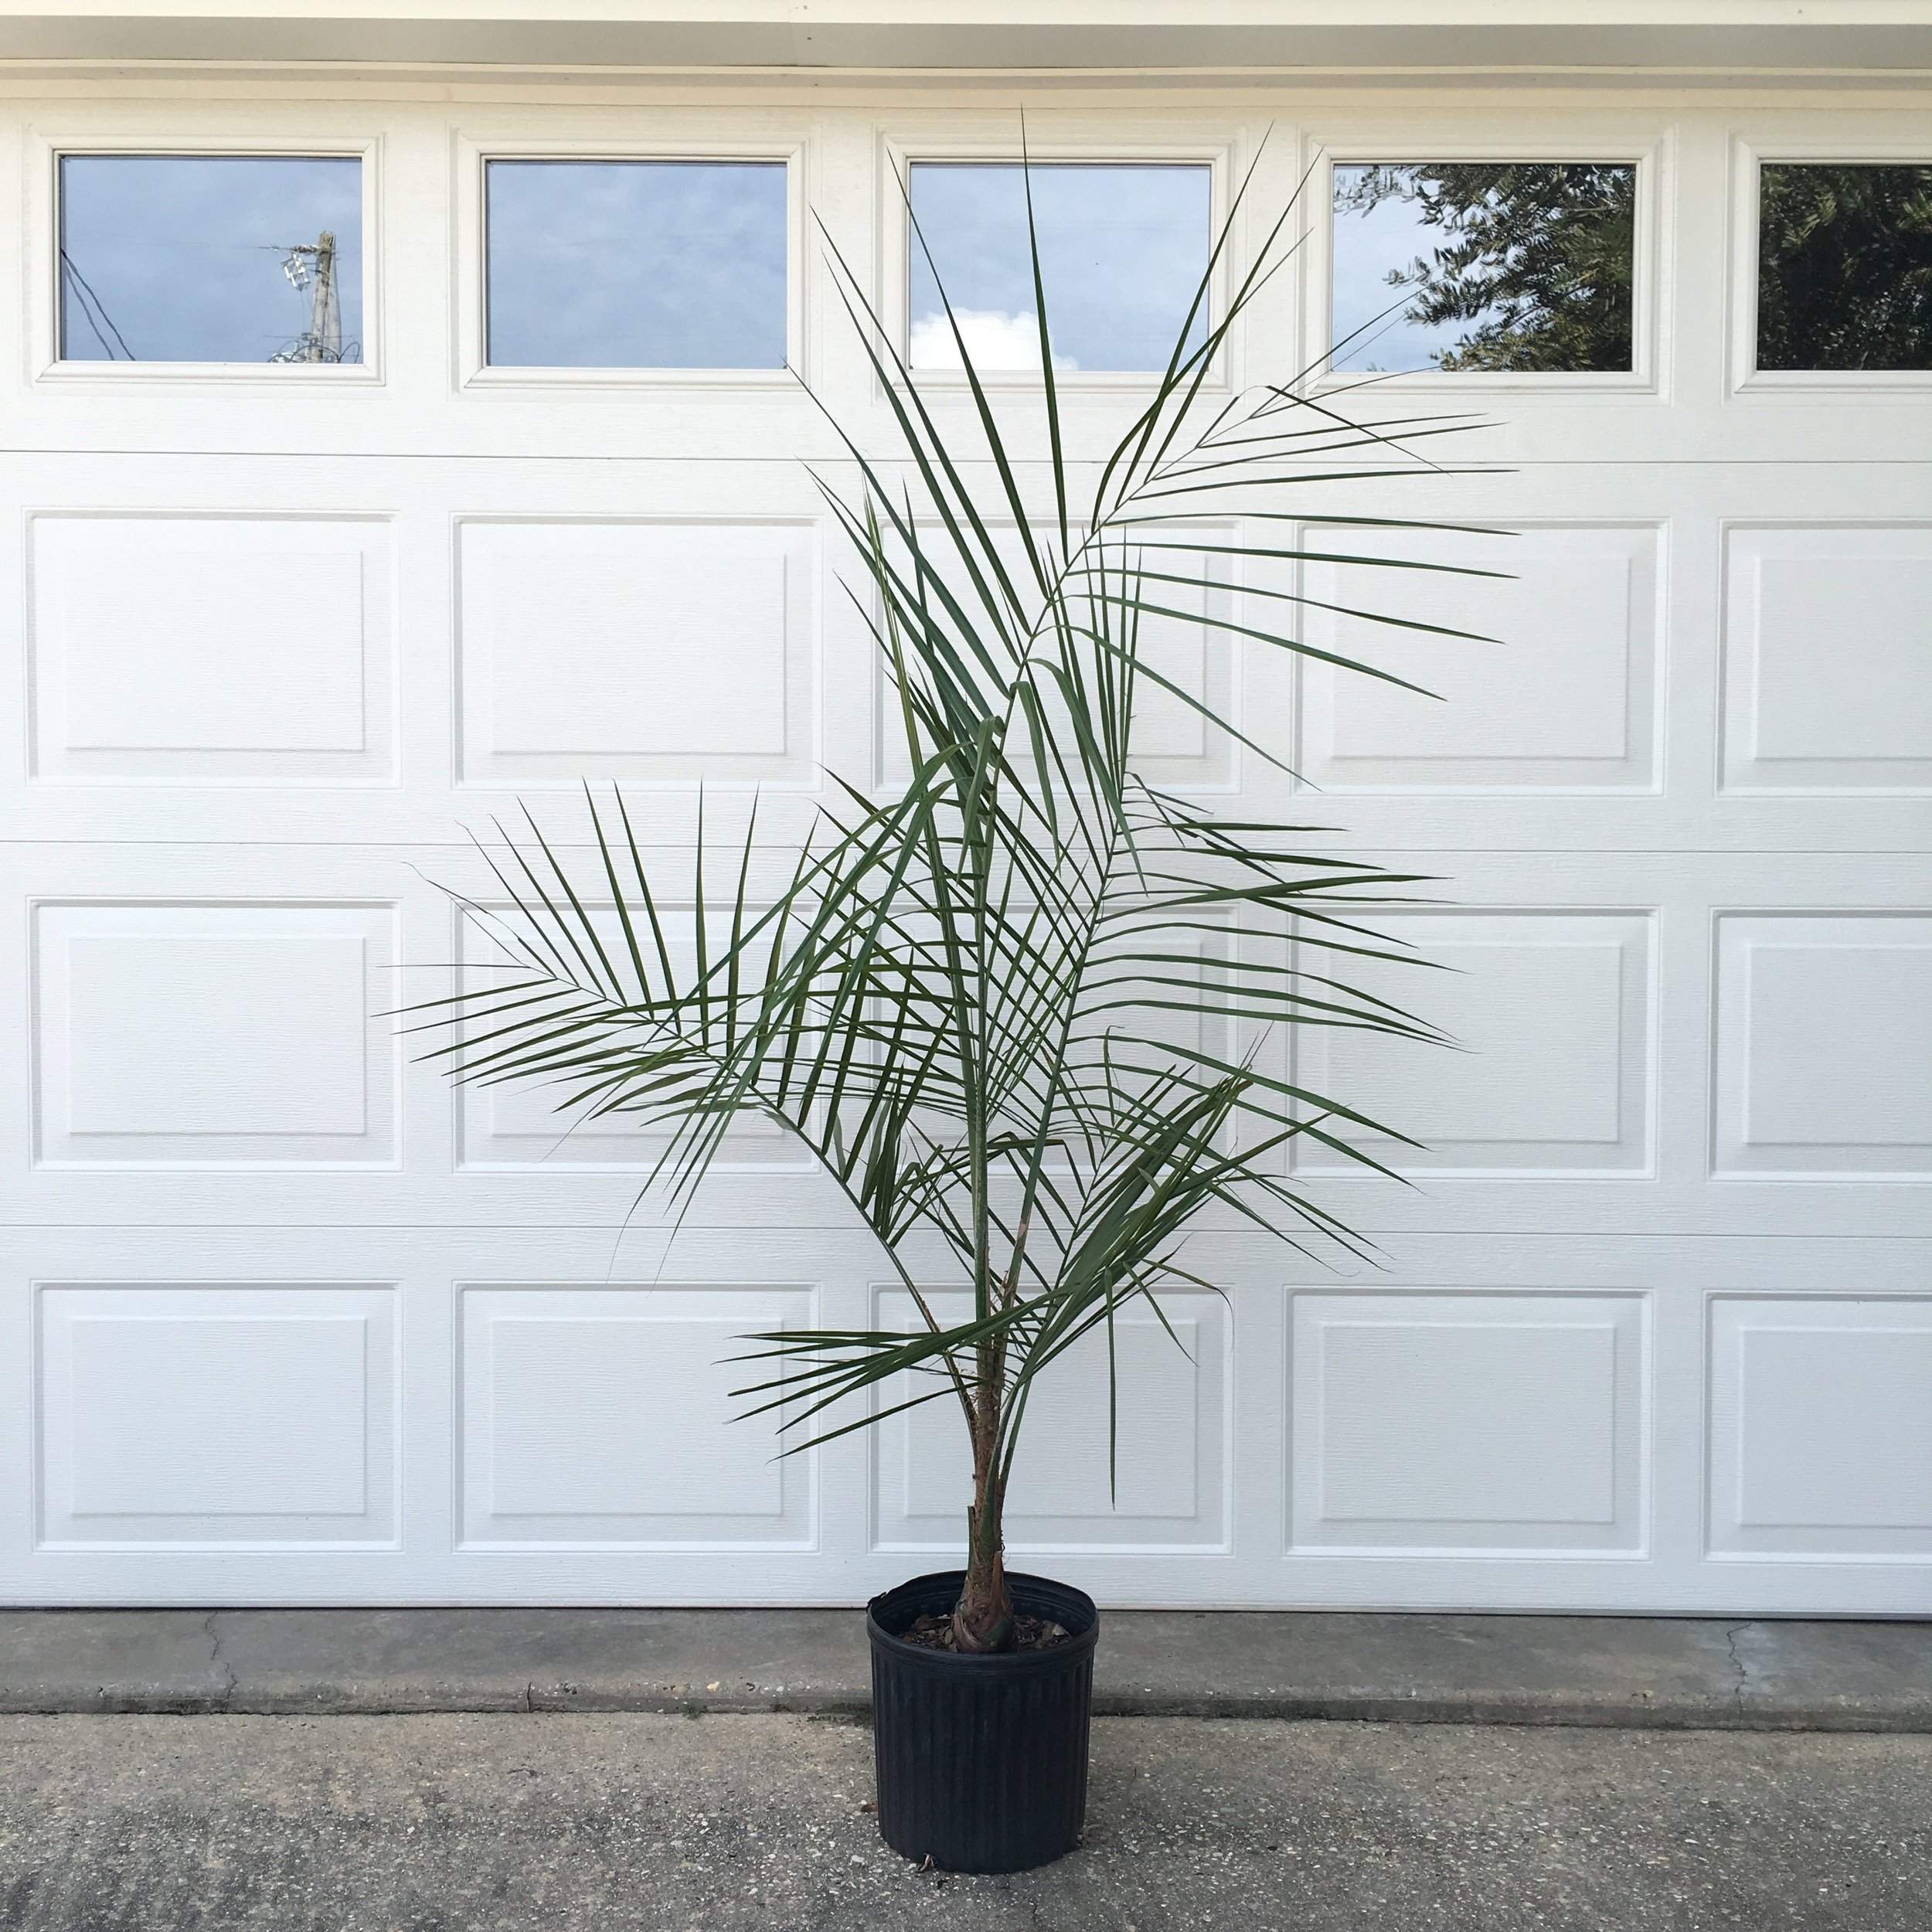 Mule Palm 3 gallon, 3 years old from seed.